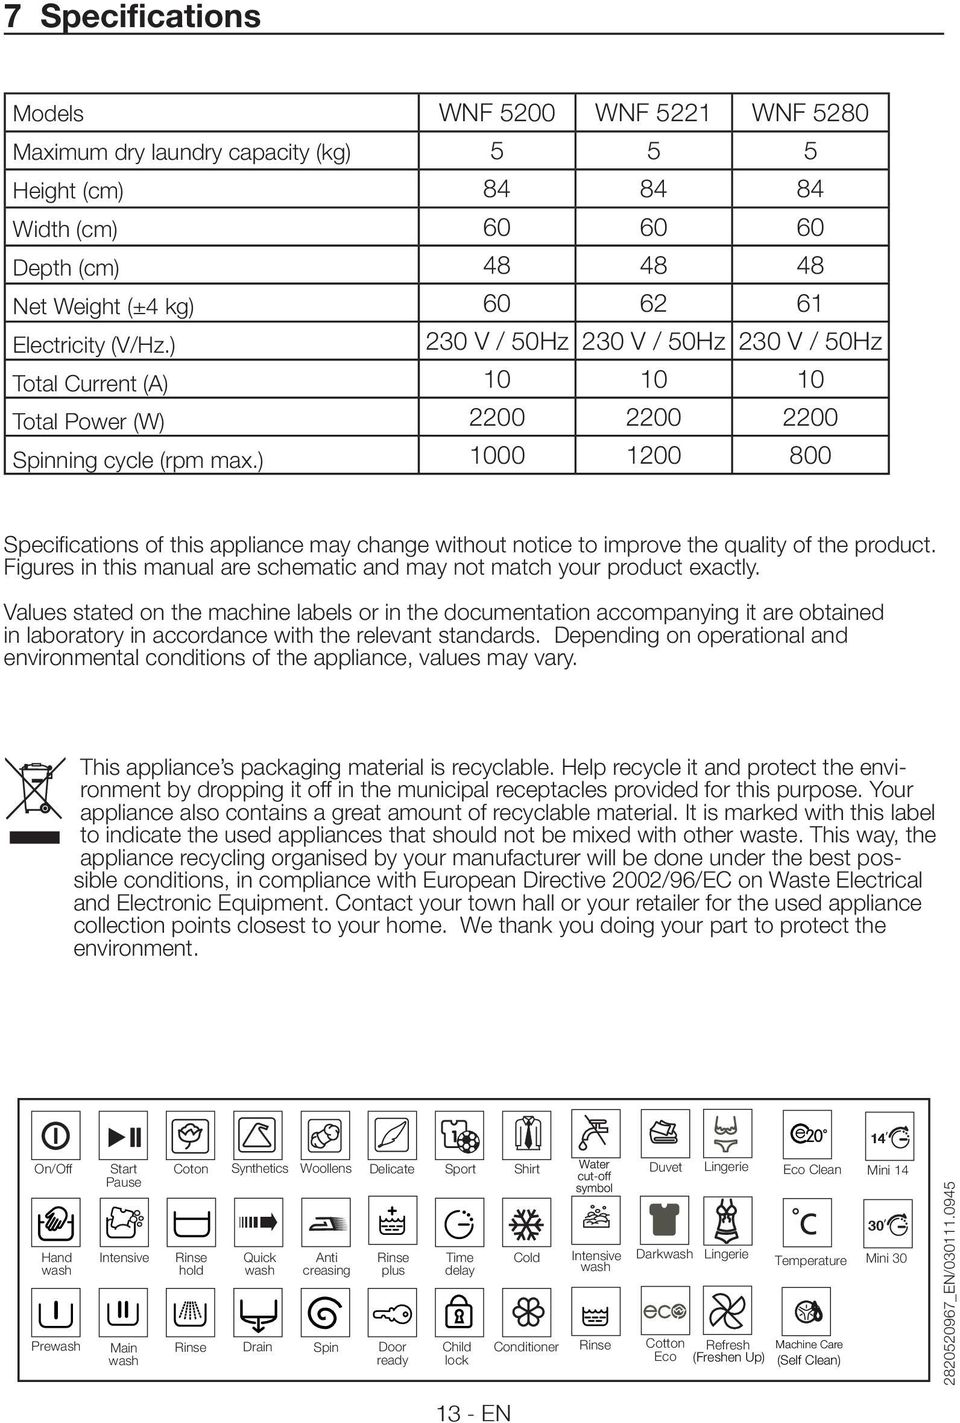 notice to improve the quality of the product. Figures in this manual are schematic and may not match your product exactly.